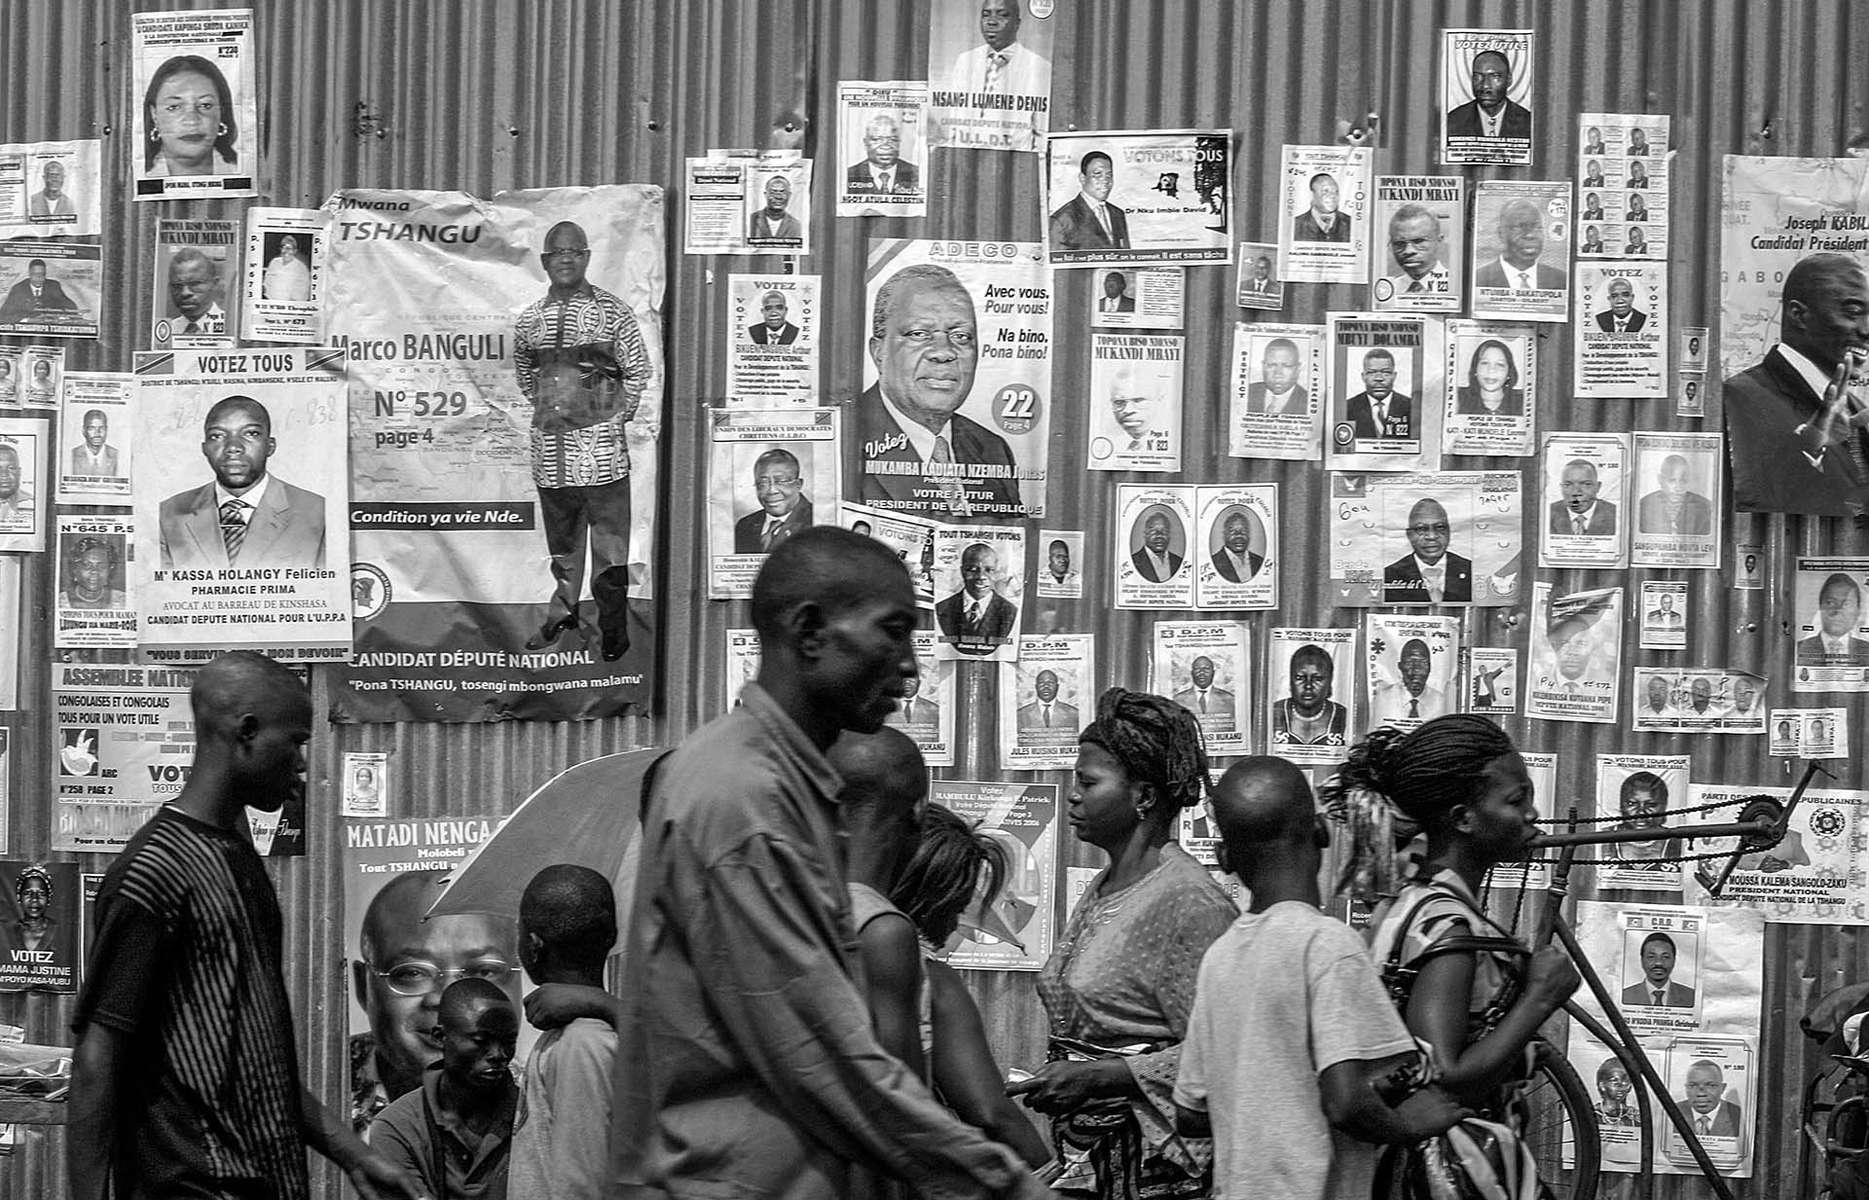 Posters of candidates for presidential and national elections occupy every inch of the wall in Kinshasa Tuesday, July 25, 2006. There are 32 presidential candidate alone. As the presidential and national election draw near on July 30th, the mood in the capital is tense. The war-torn Central African republic last had the election more than 40 years.